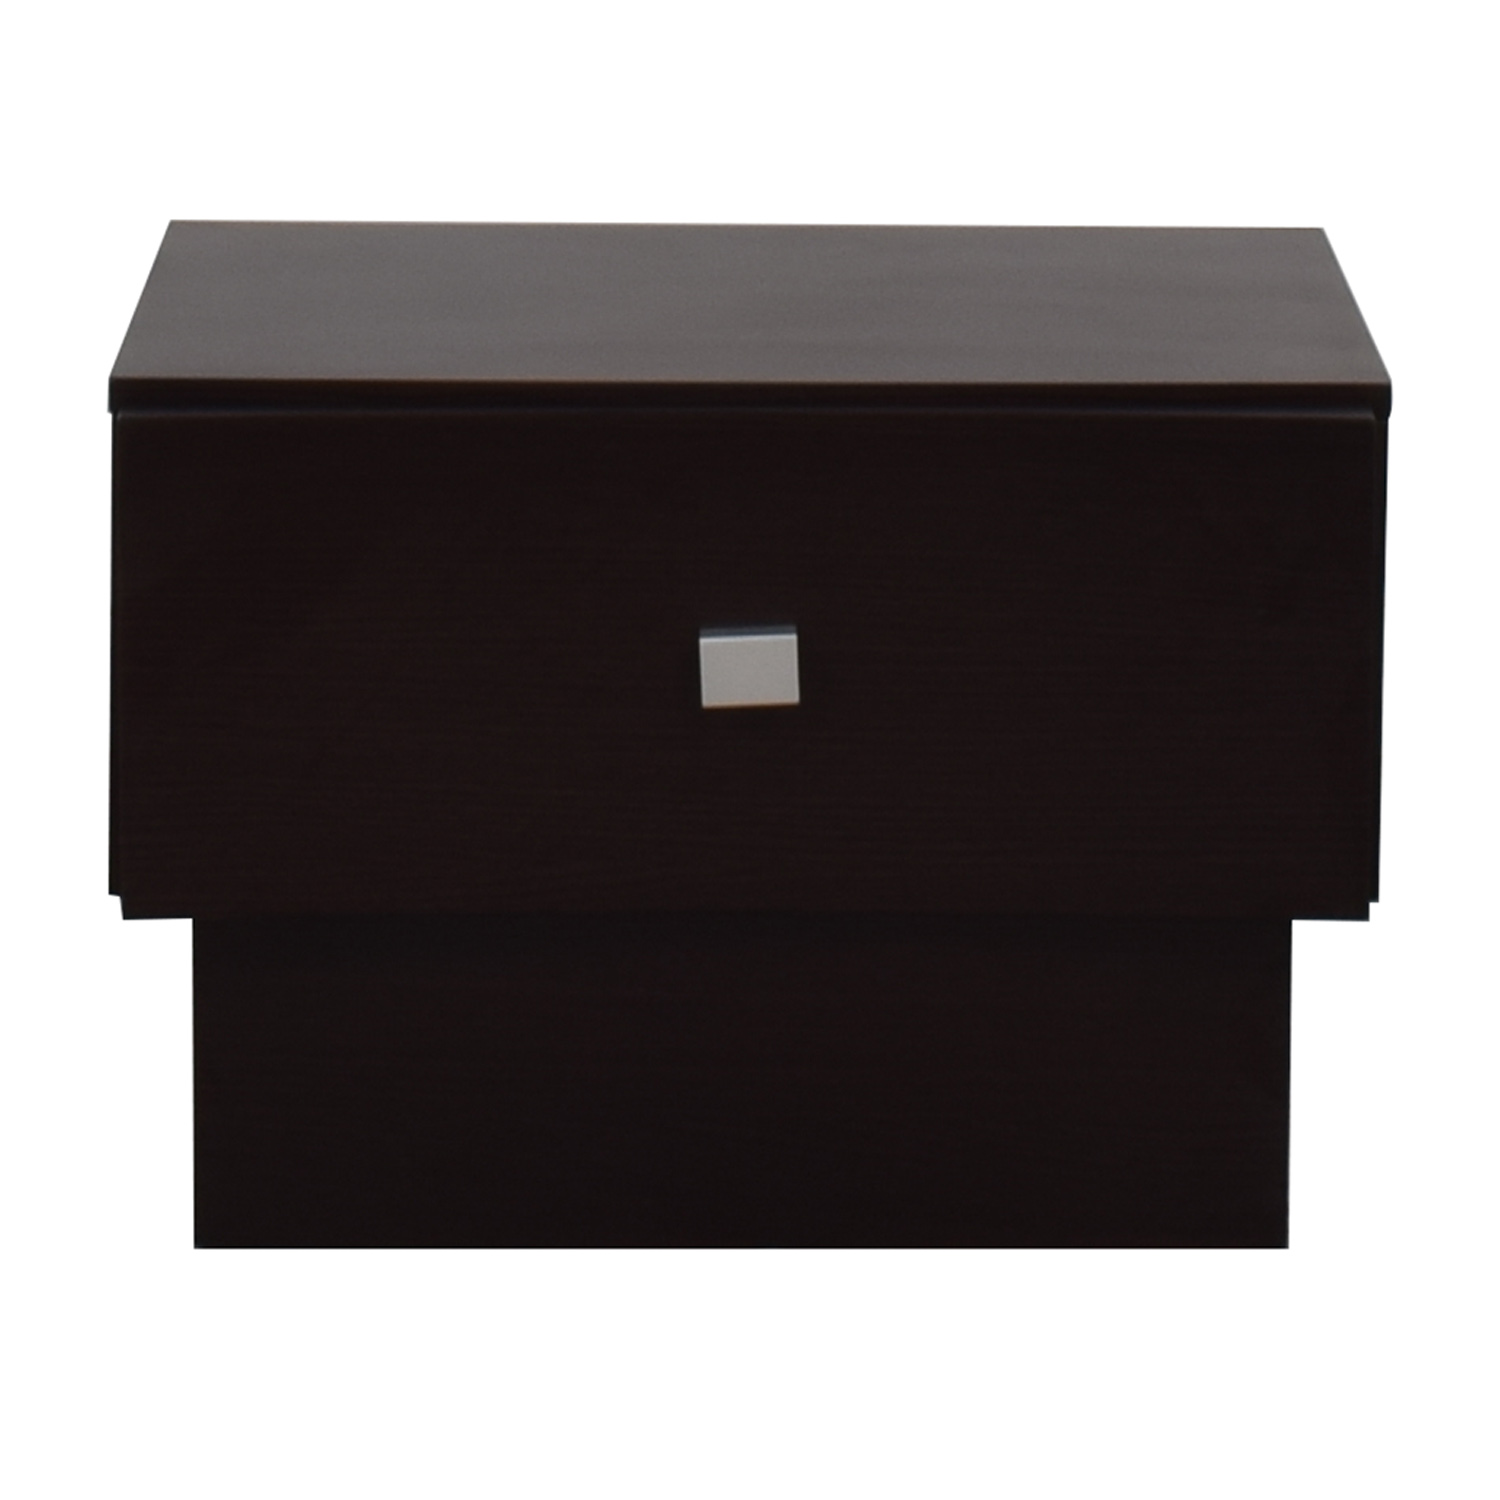 J&M Furniture J&M Furniture Modern Low Profile Nightstand on sale